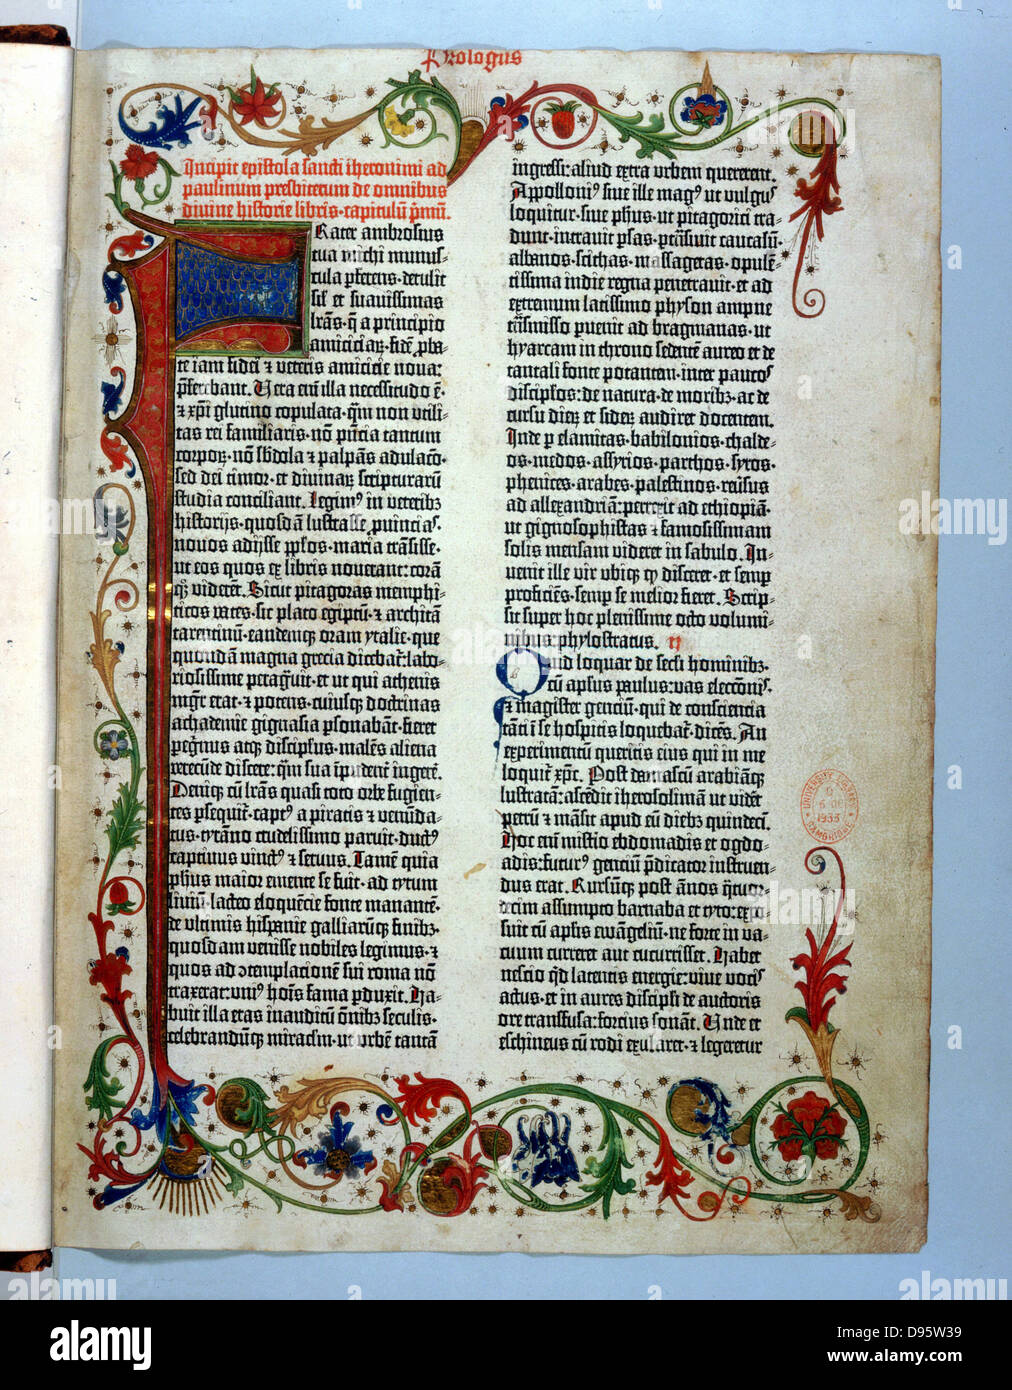 Page of 'Bible' printed by Gutenberg, 1456. Illuminated border typical of a manuscript. - Stock Image